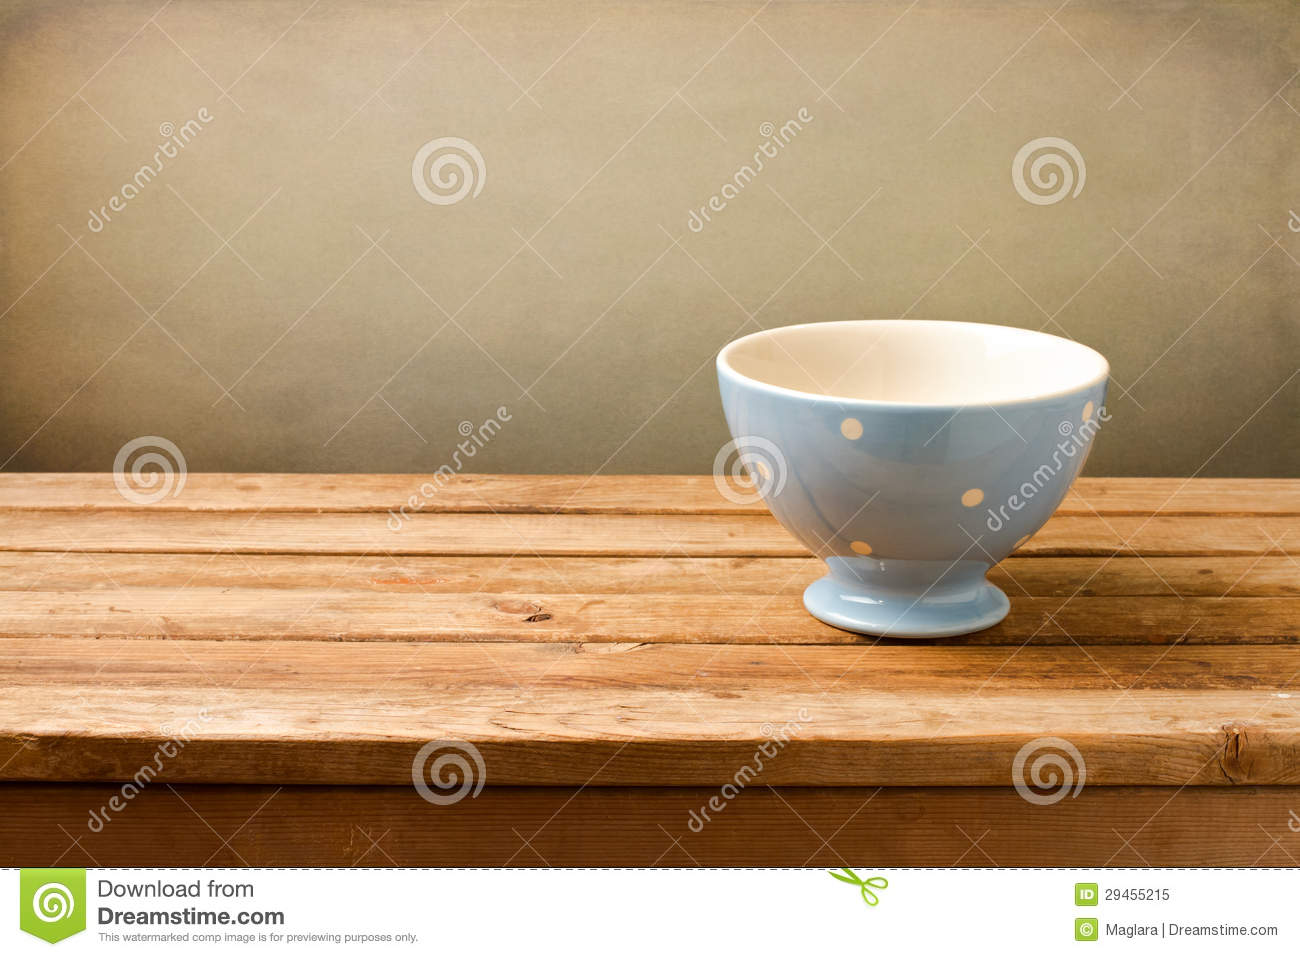 Superb img of Empty Blue Bowl On Wooden Table Royalty Free Stock Photo Image  with #431D04 color and 1300x957 pixels